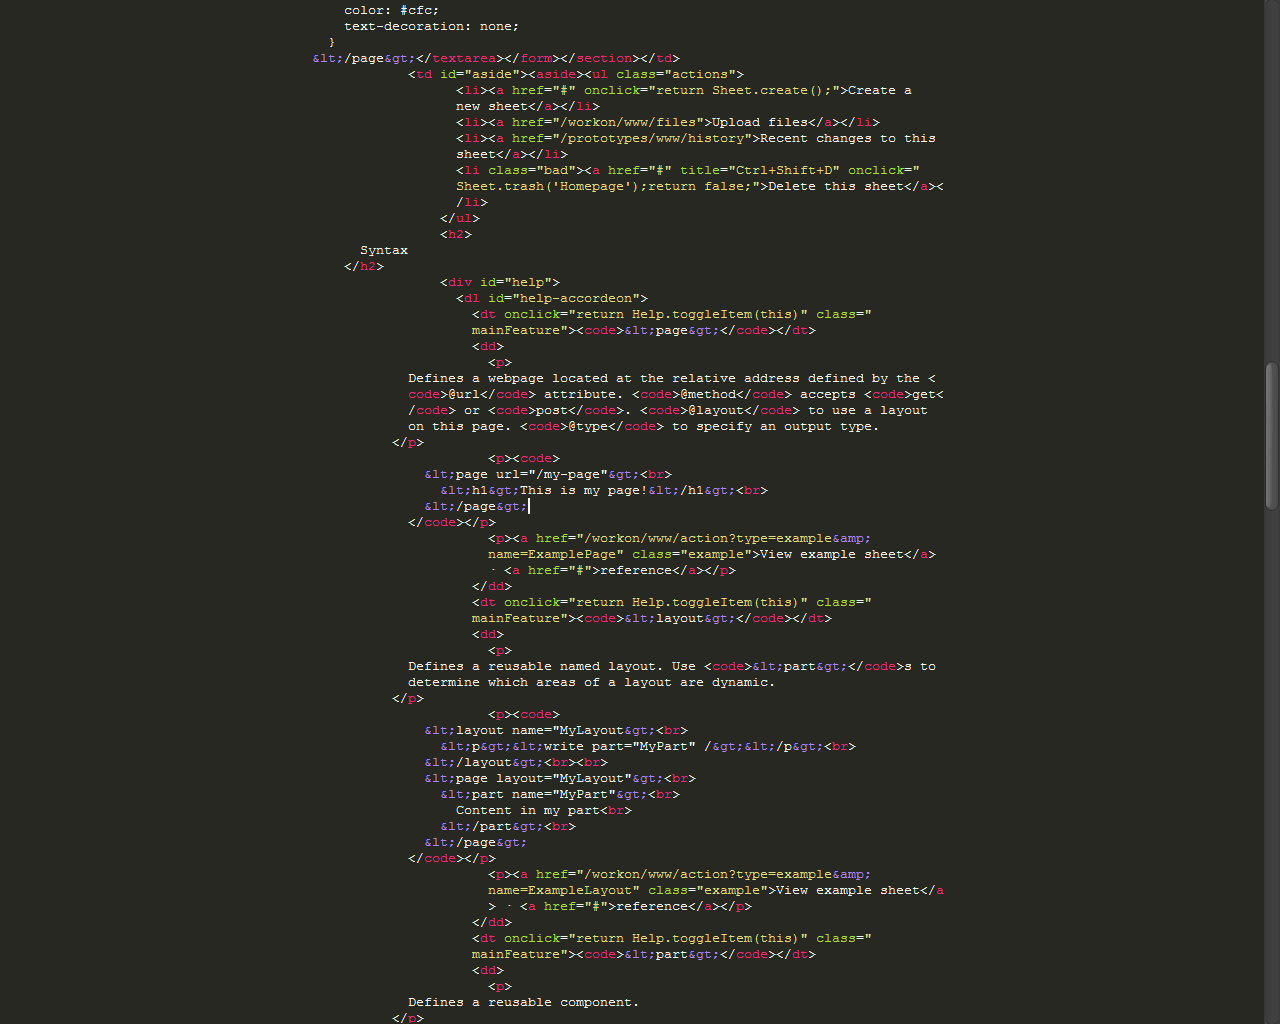 Sublime Text's 'distraction-free' mode. Do you feel immersed?